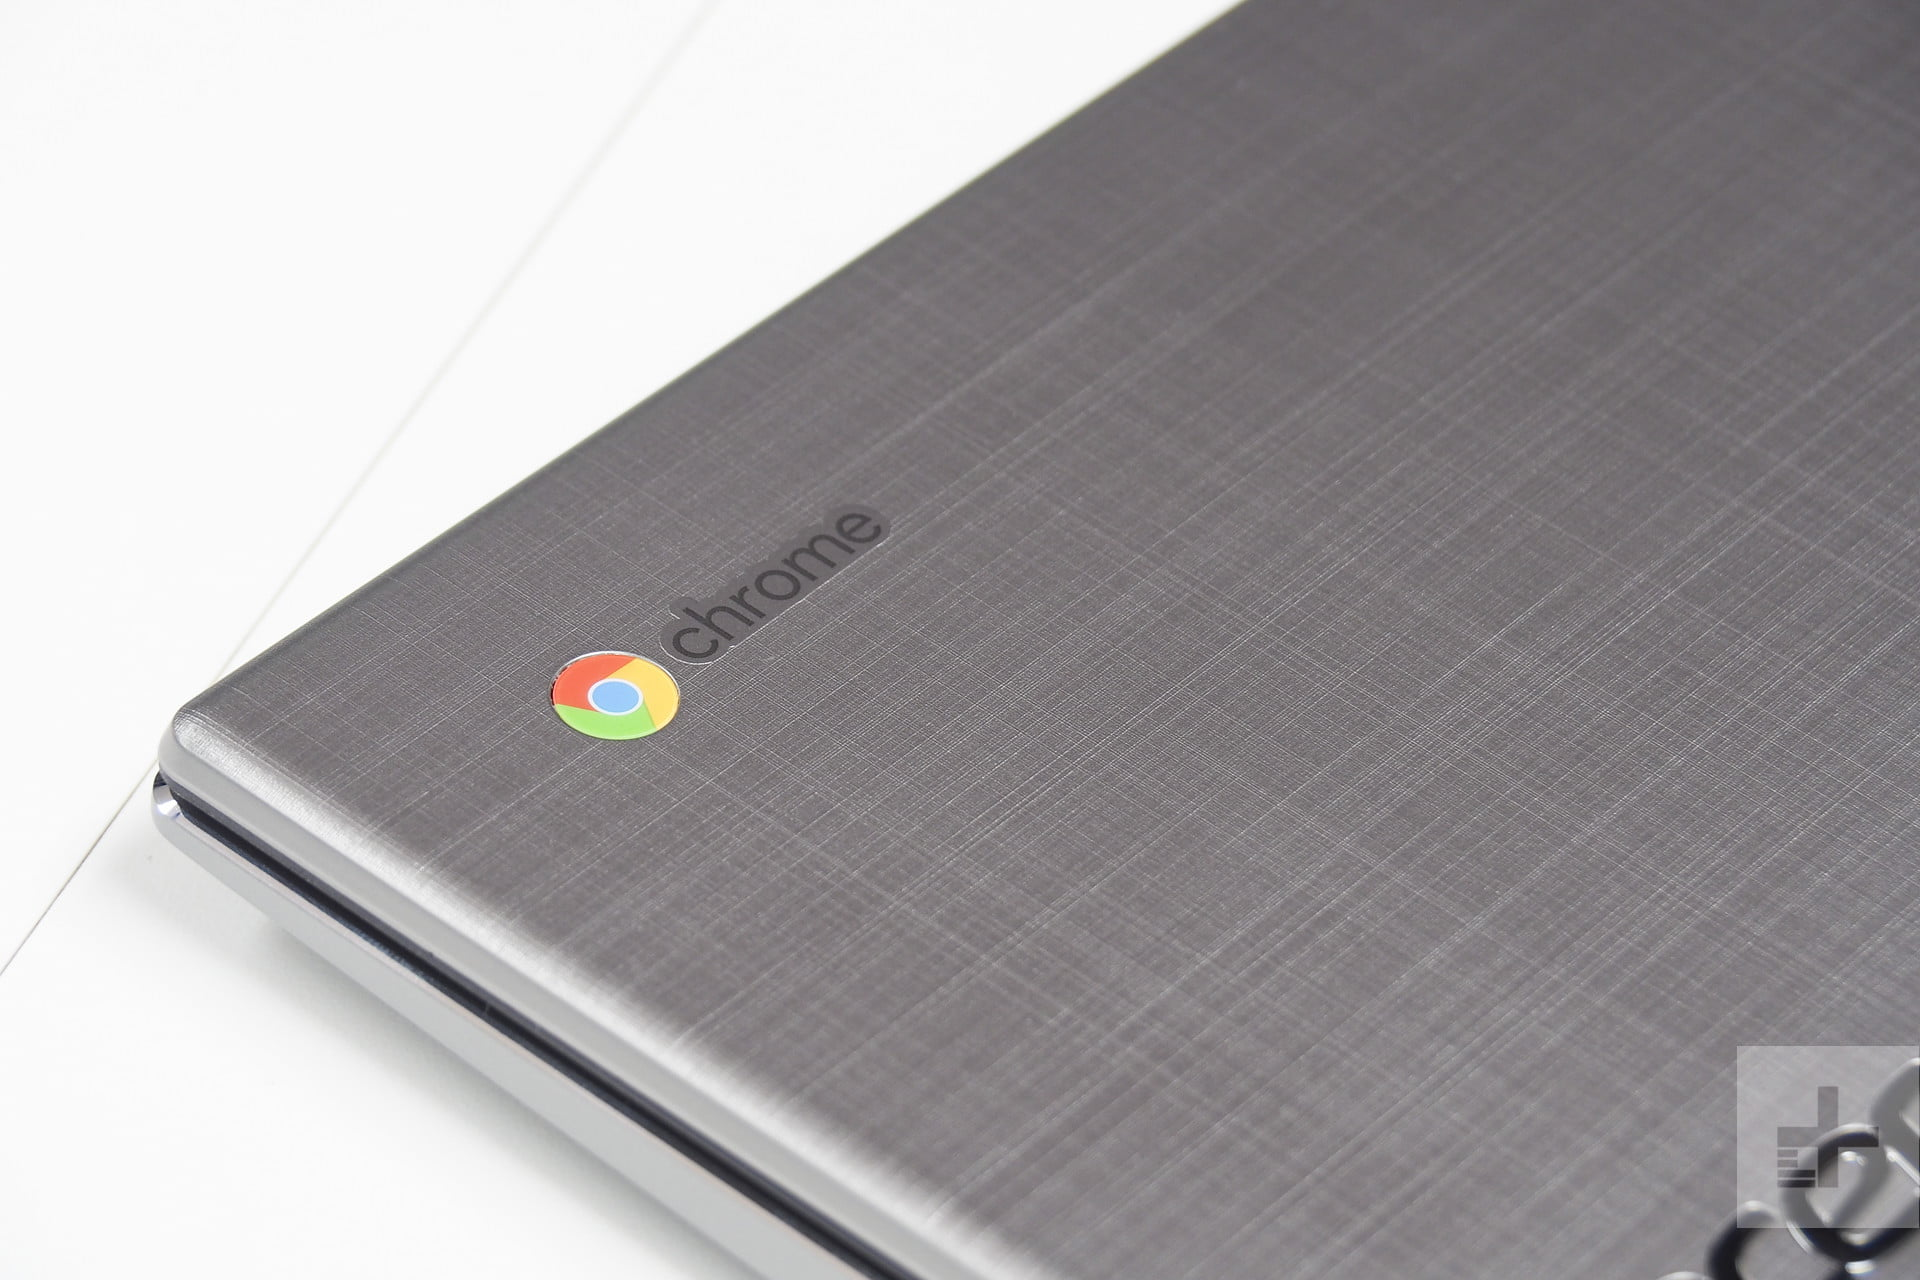 Common Chrome OS Problems, and How to Fix Them | Digital Trends